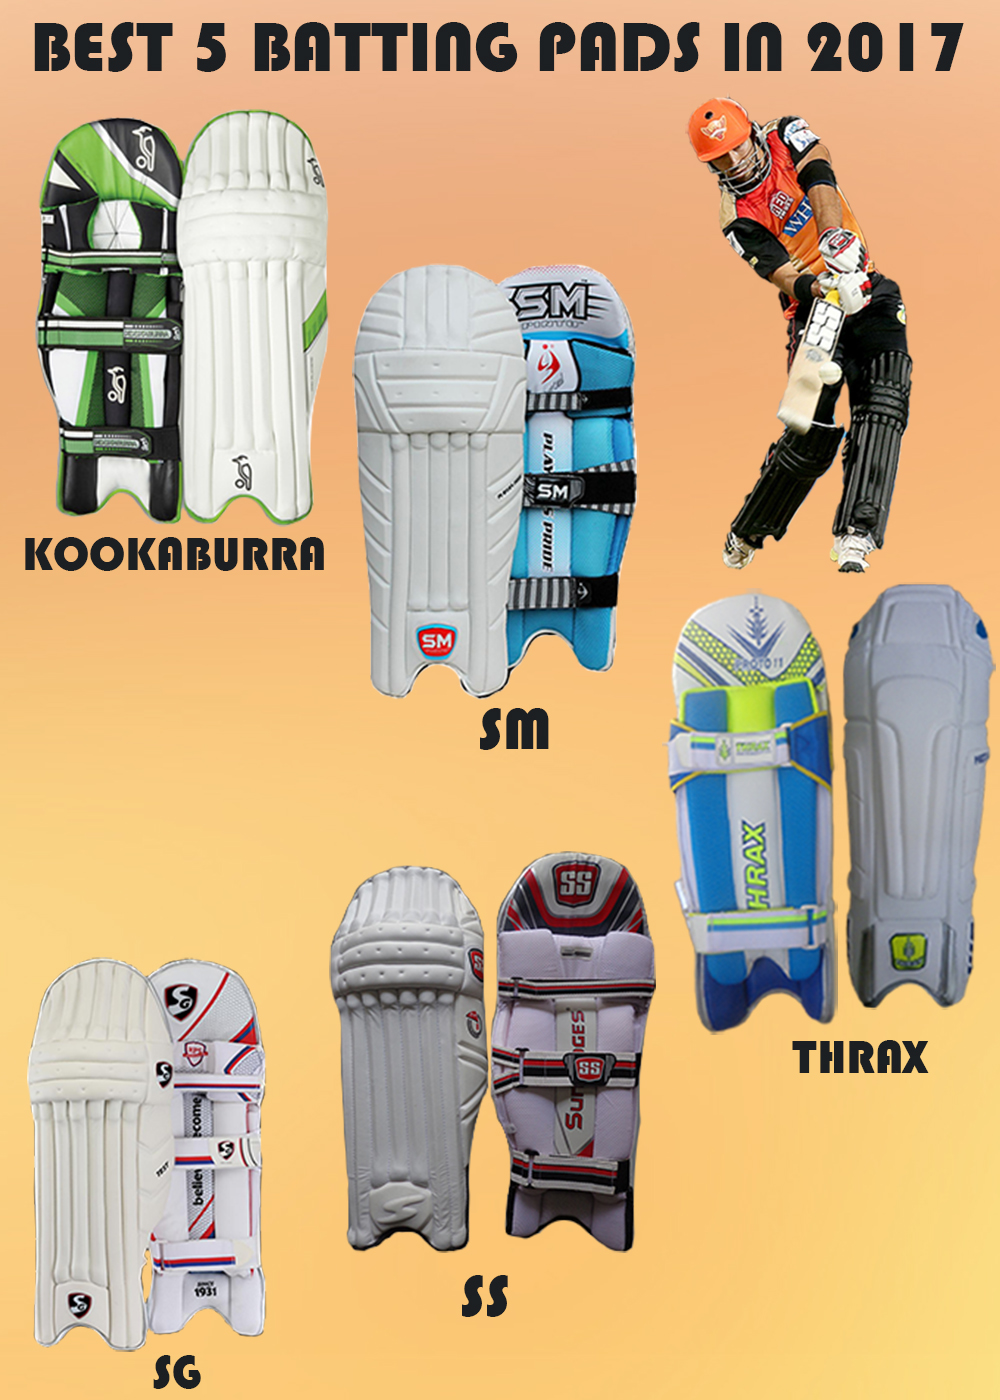 BEST 5 BATTING PADS IMAGES_1